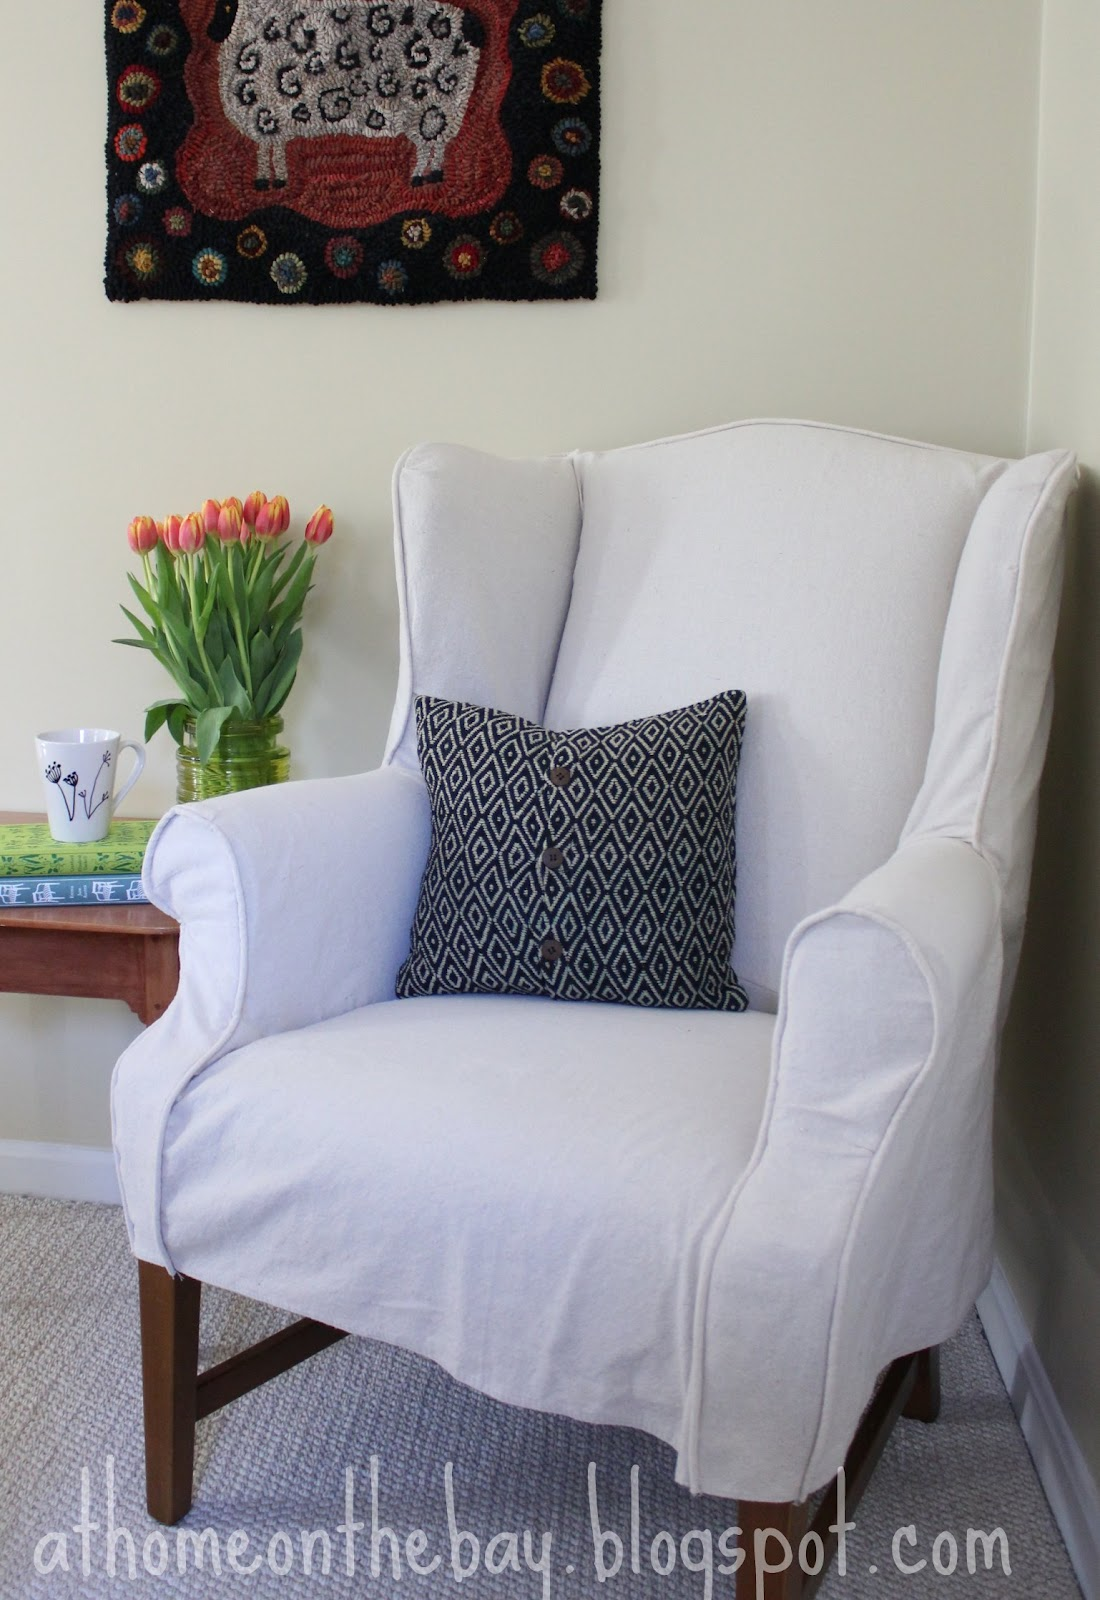 One Of Marianu0027s Tips Is To Make Your First Slipcover Out Of A Drop Cloth.  They Are Inexpensive And Durable And That Is Exactly What I Did.